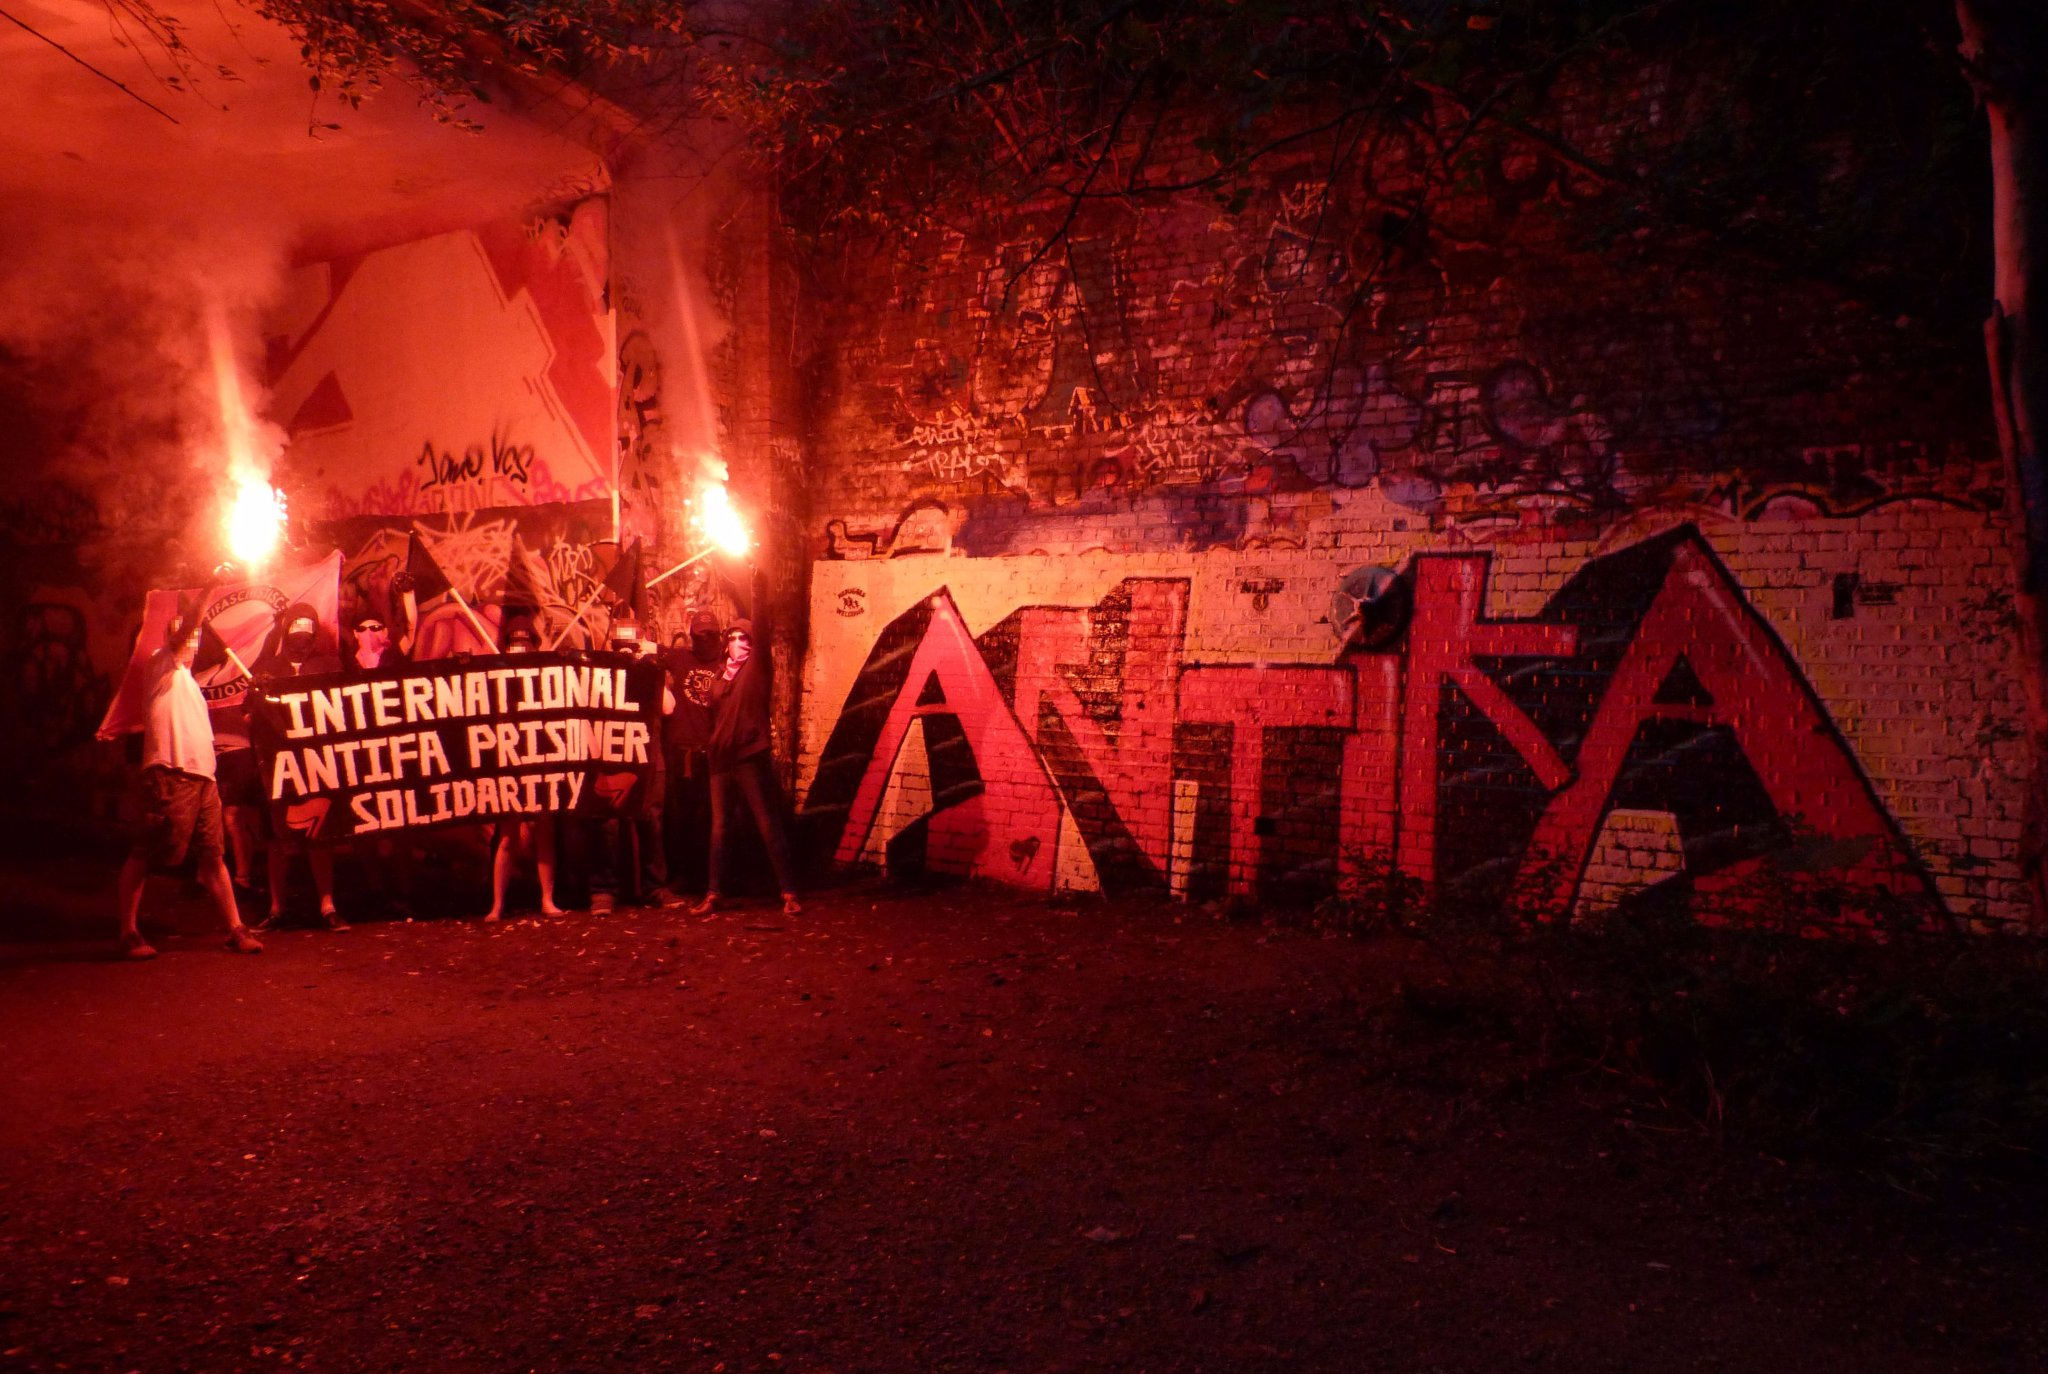 North London Anti Fascists Break Out The Ultra Style And A Sick Mural For